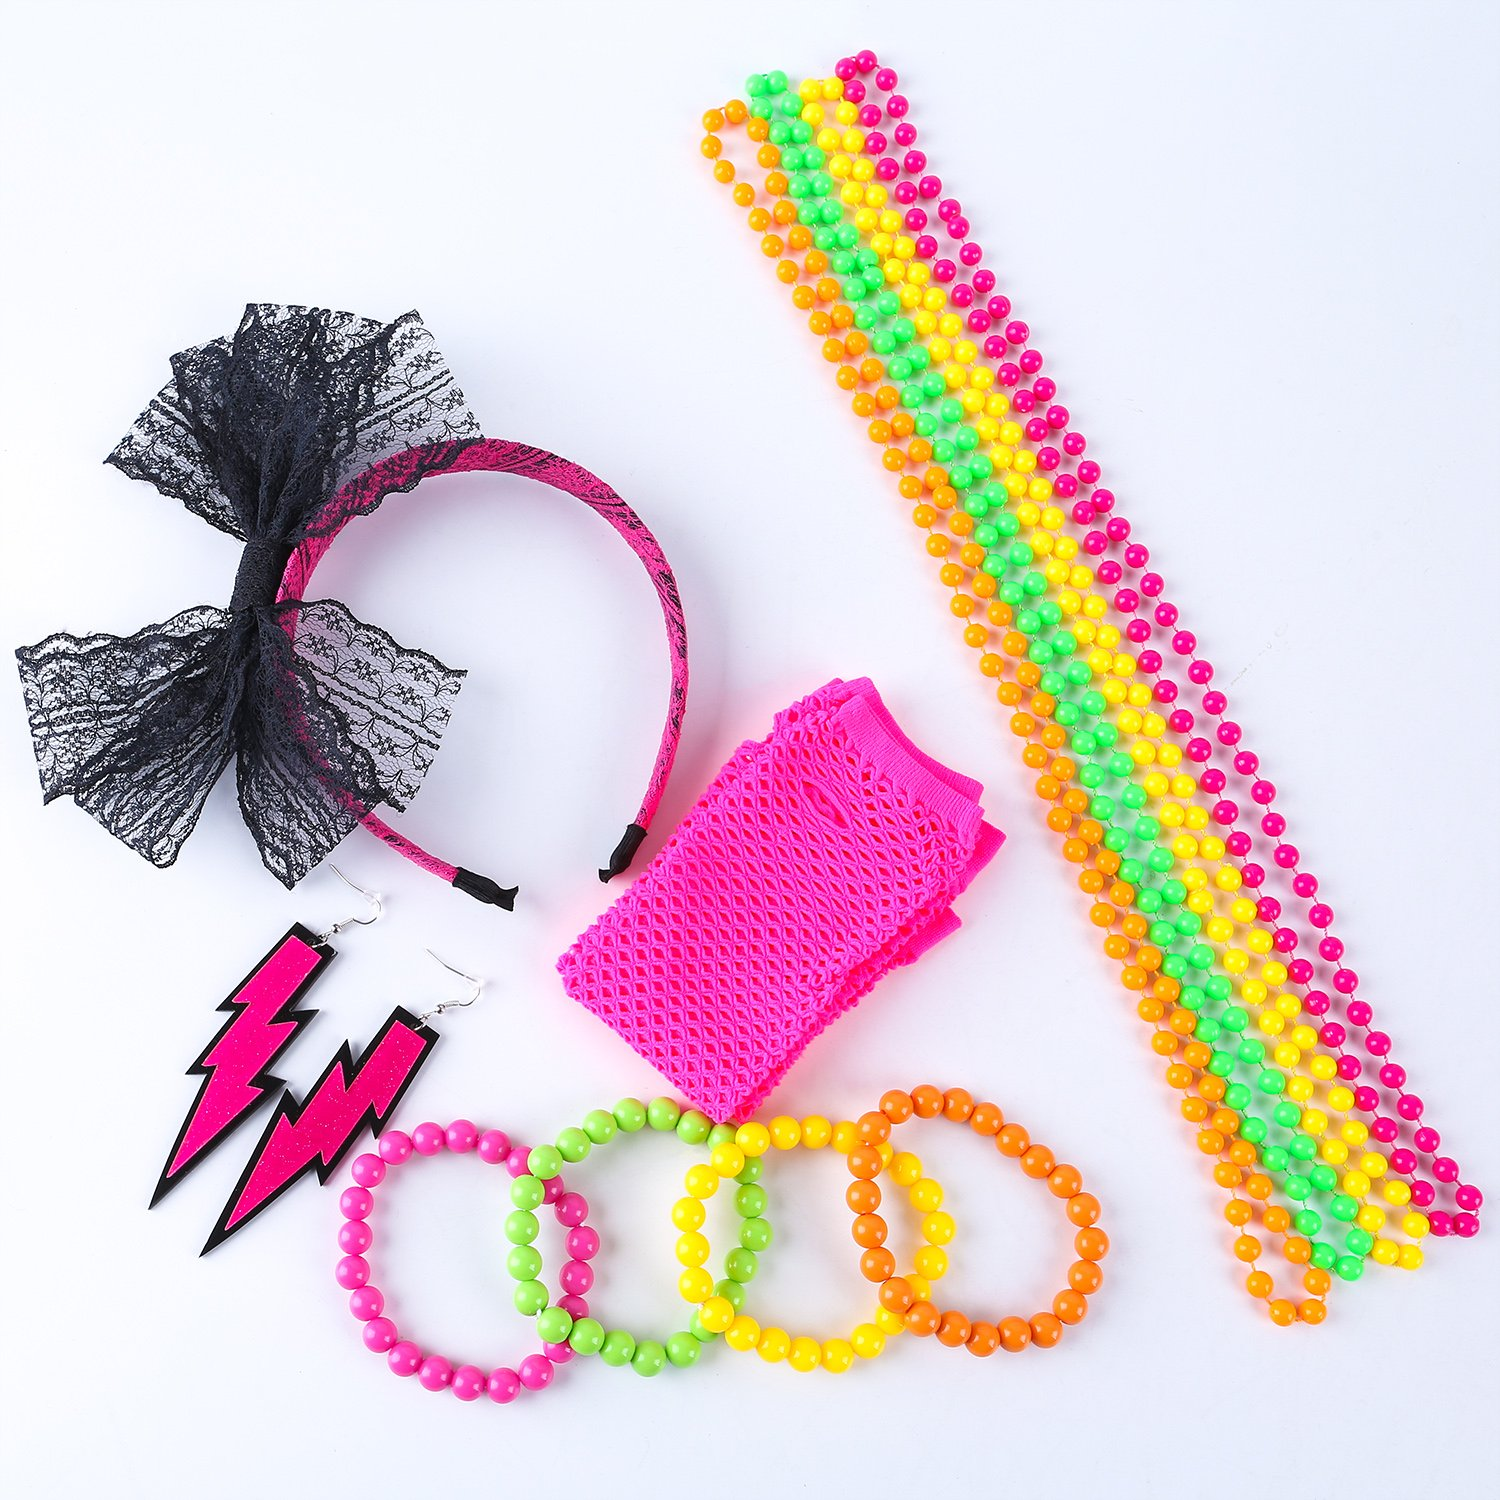 Coobey 80s Neon Bracelet Necklace Bow Headband Fishnet Gloves Lighting Earring by Coobey (Image #7)